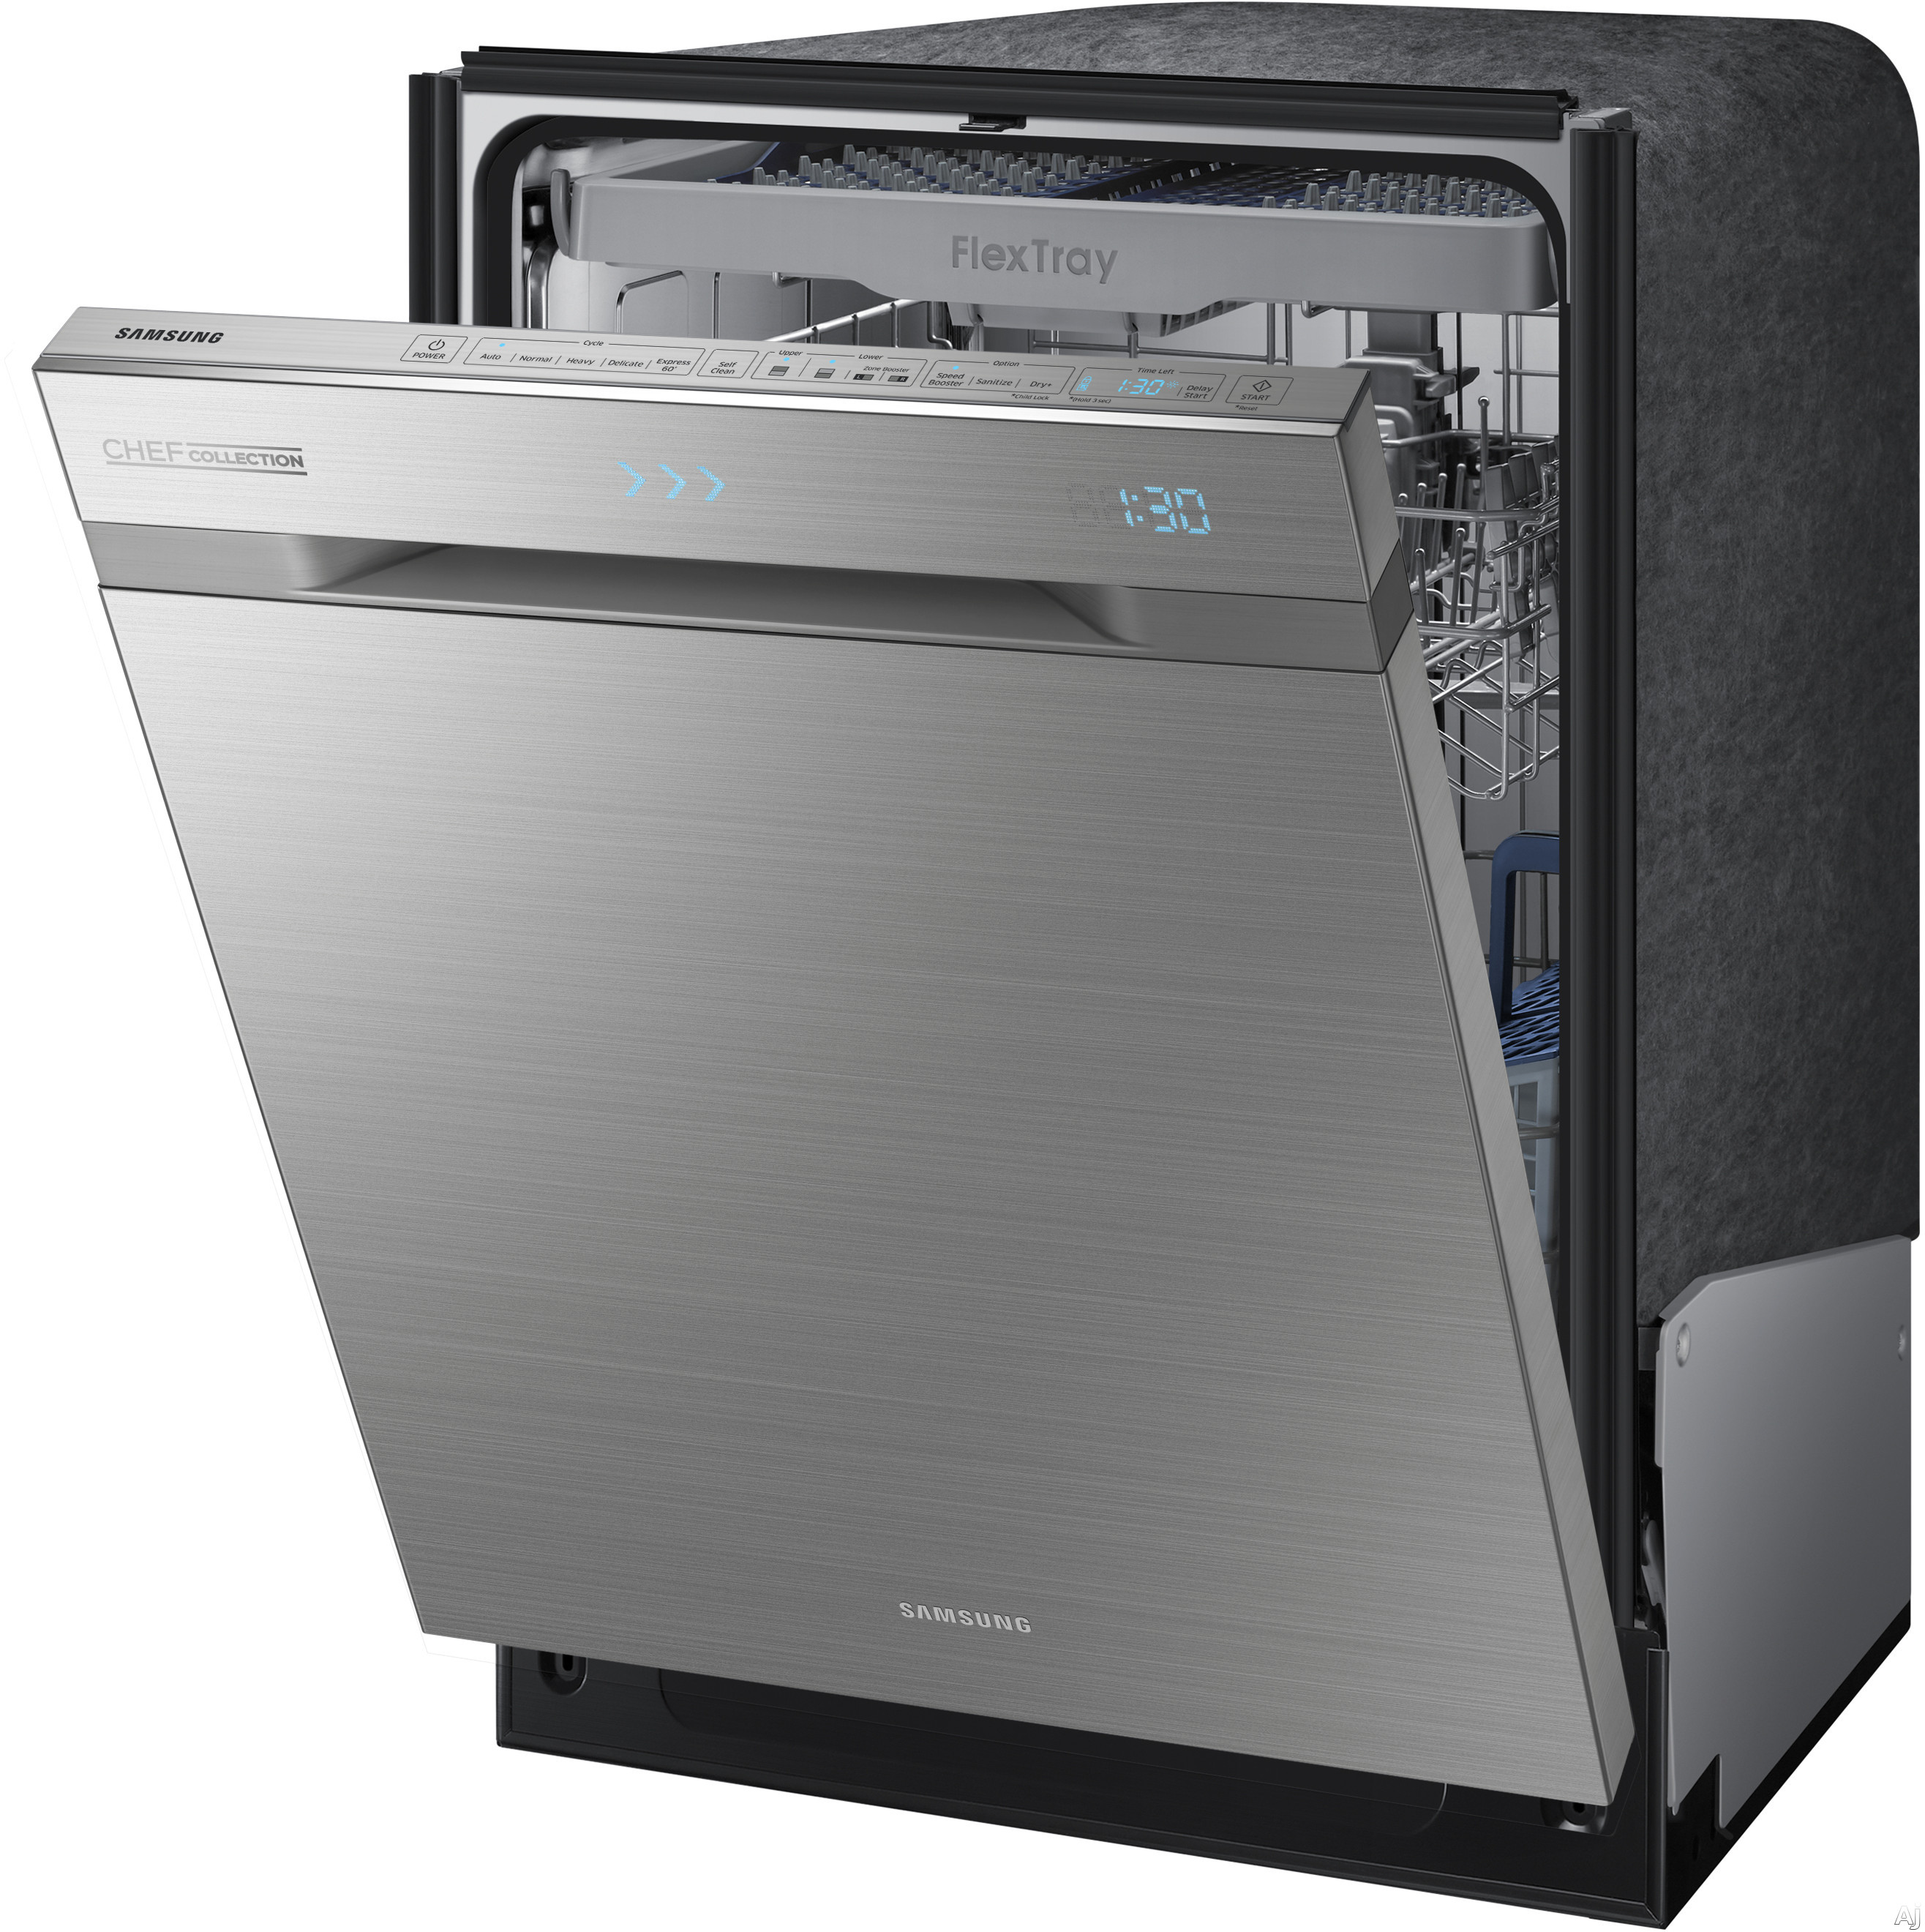 Samsung Dw80h9970us Top Control Chef Collection Dishwasher